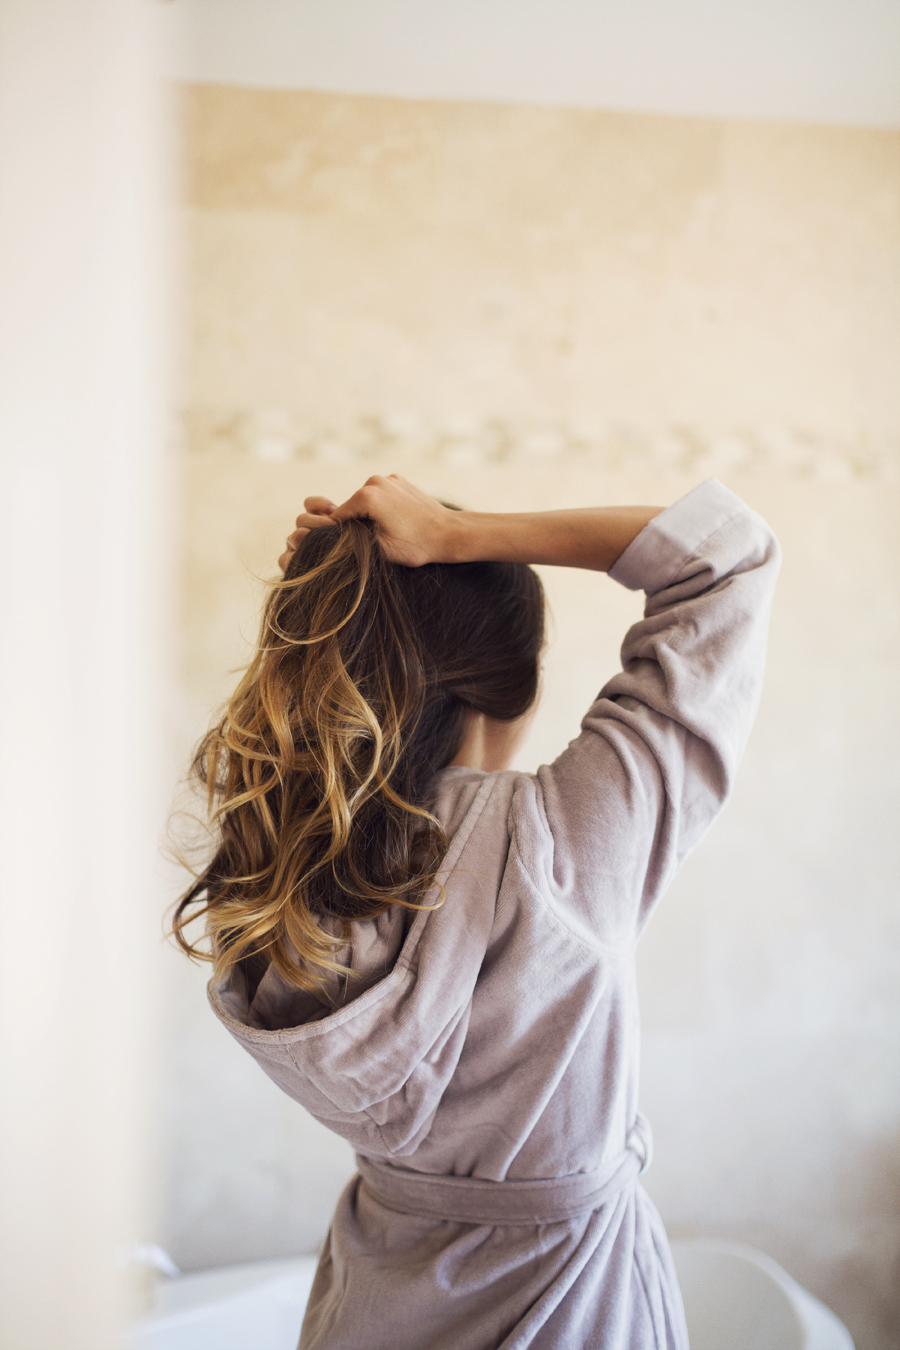 Girl in bathrobe with ombre brown blonde hair pulling her hair up